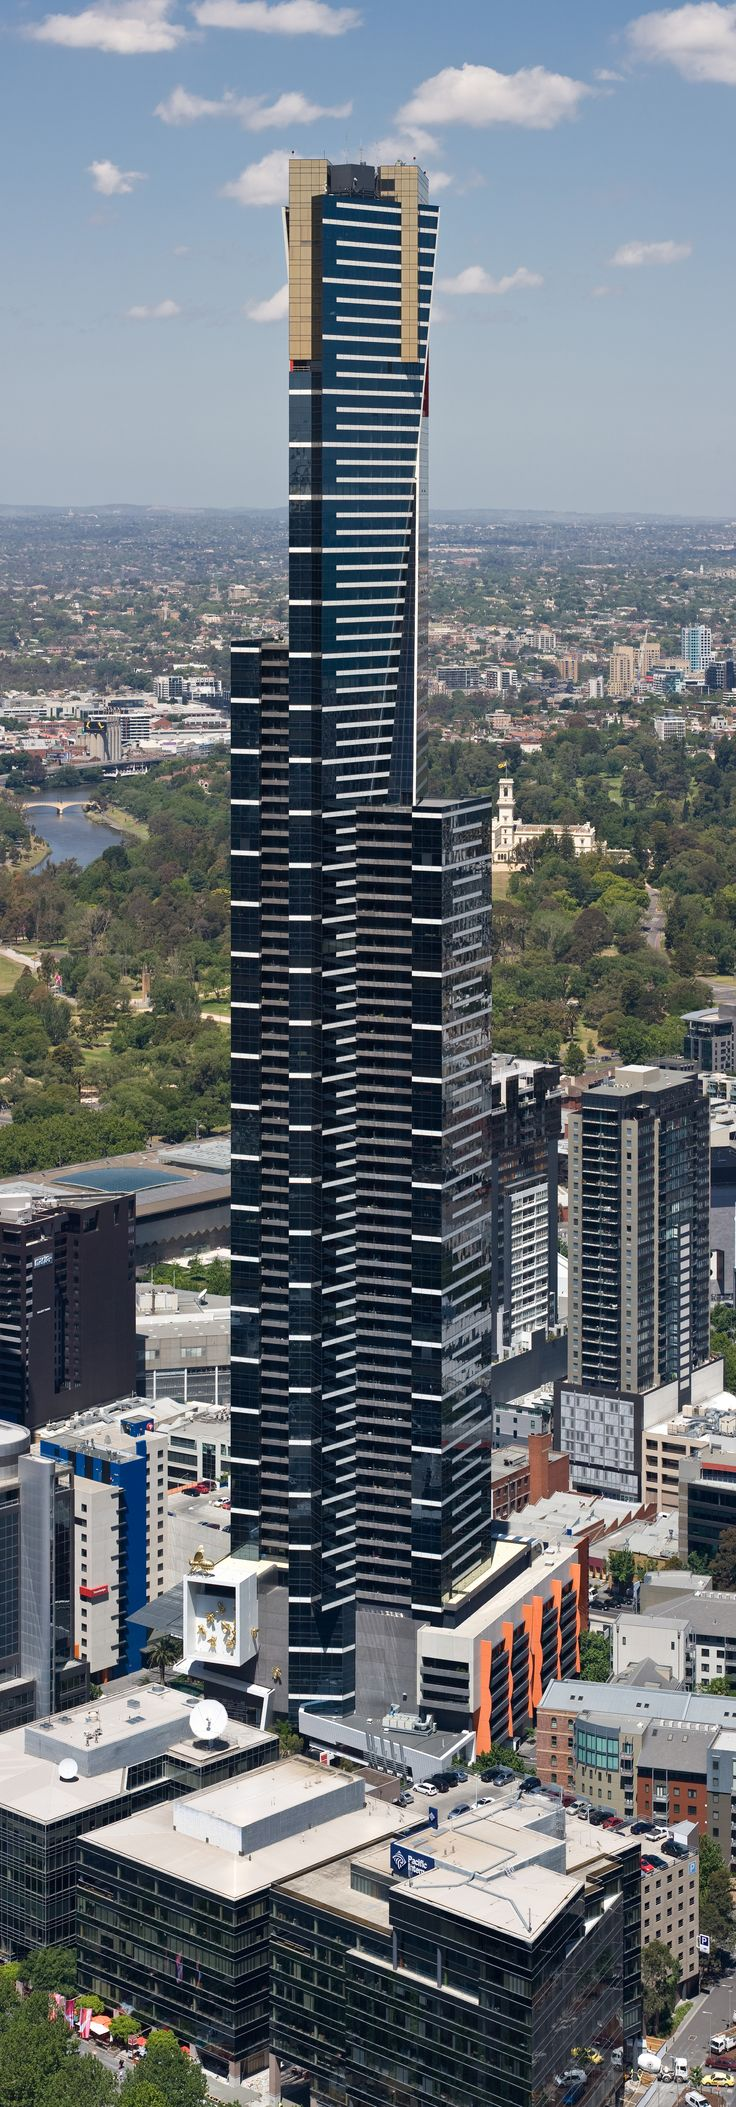 Eureka Tower is a 297.3-metre (975 ft) skyscraper located in Melbourne, Victoria, Australia. It is named after the Eureka Stockade, a rebellion during the Victorian gold rush in 1854. This has been incorporated into the design, with the building's gold crown representing the gold rush and a red stripe representing the blood spilt during the revolt. It was the world's tallest residential tower now 12th. (Click to see Botanical Gardens Government House immediate background)